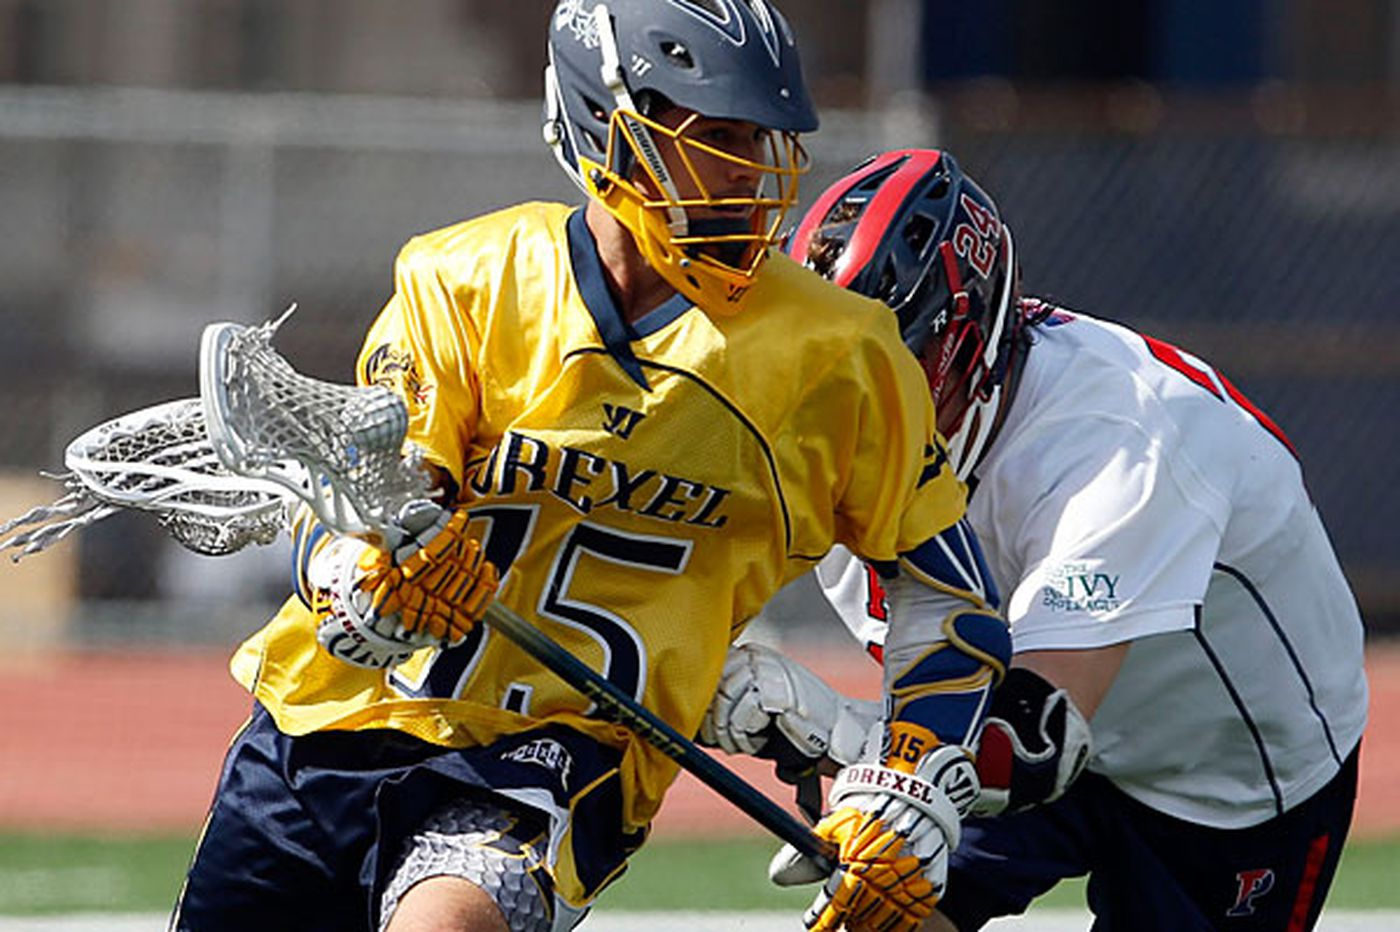 Drexel men's lacrosse falls in Colonial Athletic title game, miss out on NCAA Tournament bid